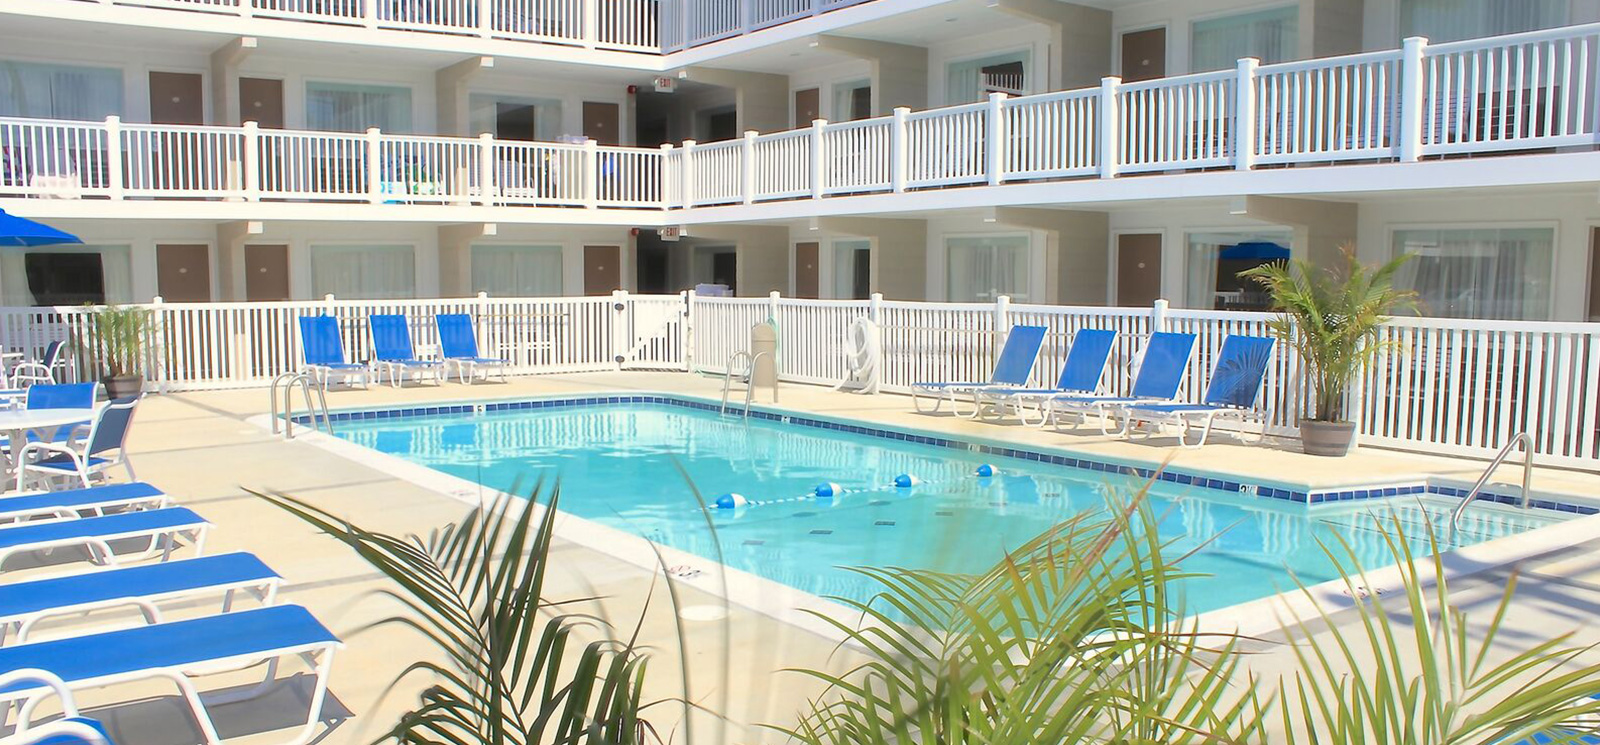 Hotel Rehoboth Downtown Rehoboth Beach Hotel The Oceanus